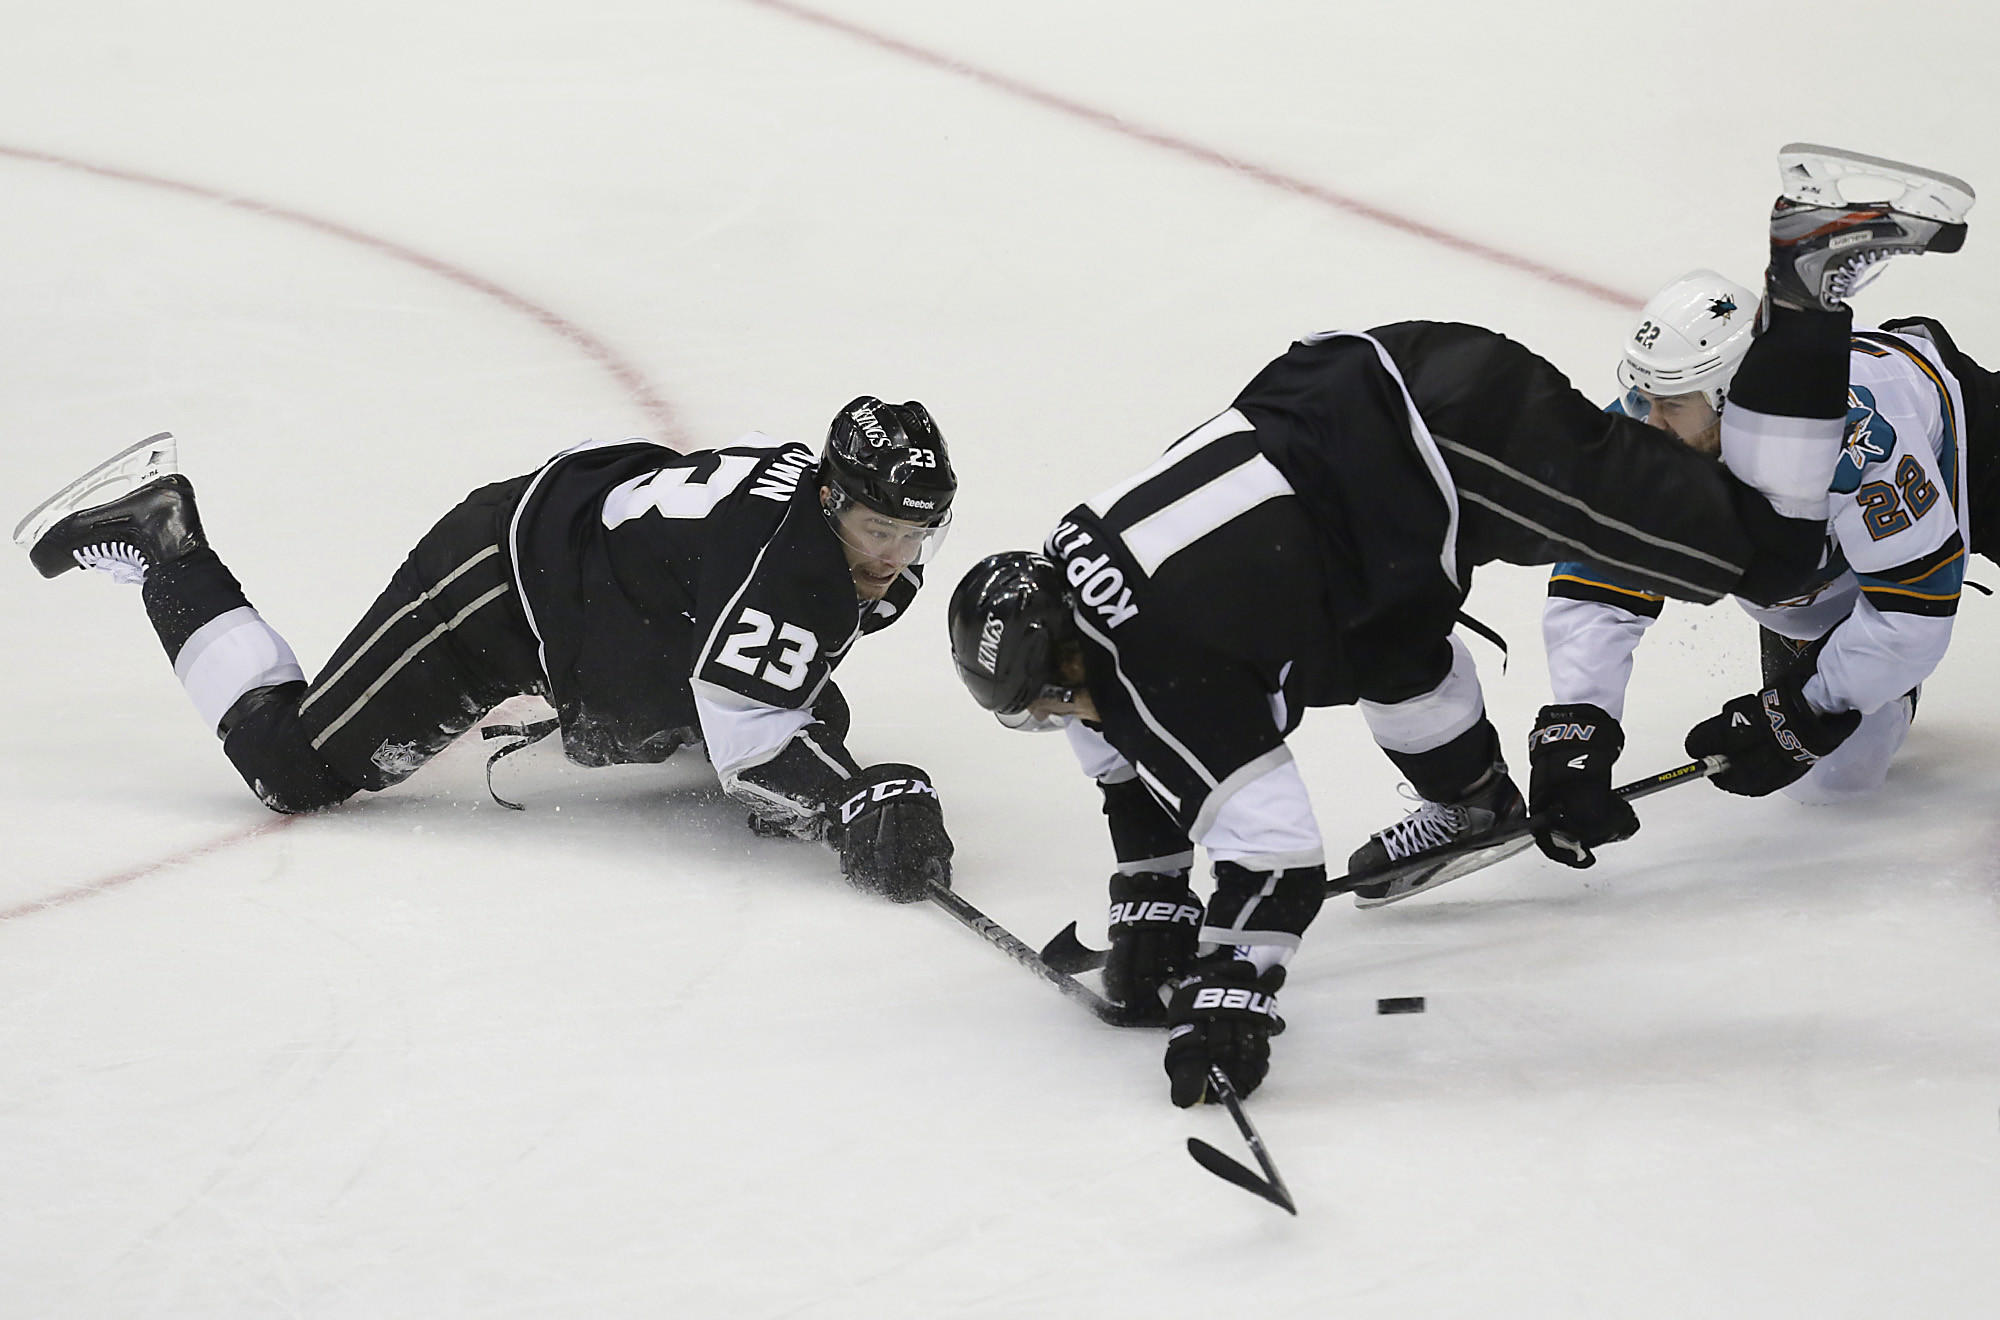 Dustin Brown, left, and Anze Kopitar, center, will be together again on the ice for the Kings tonight.